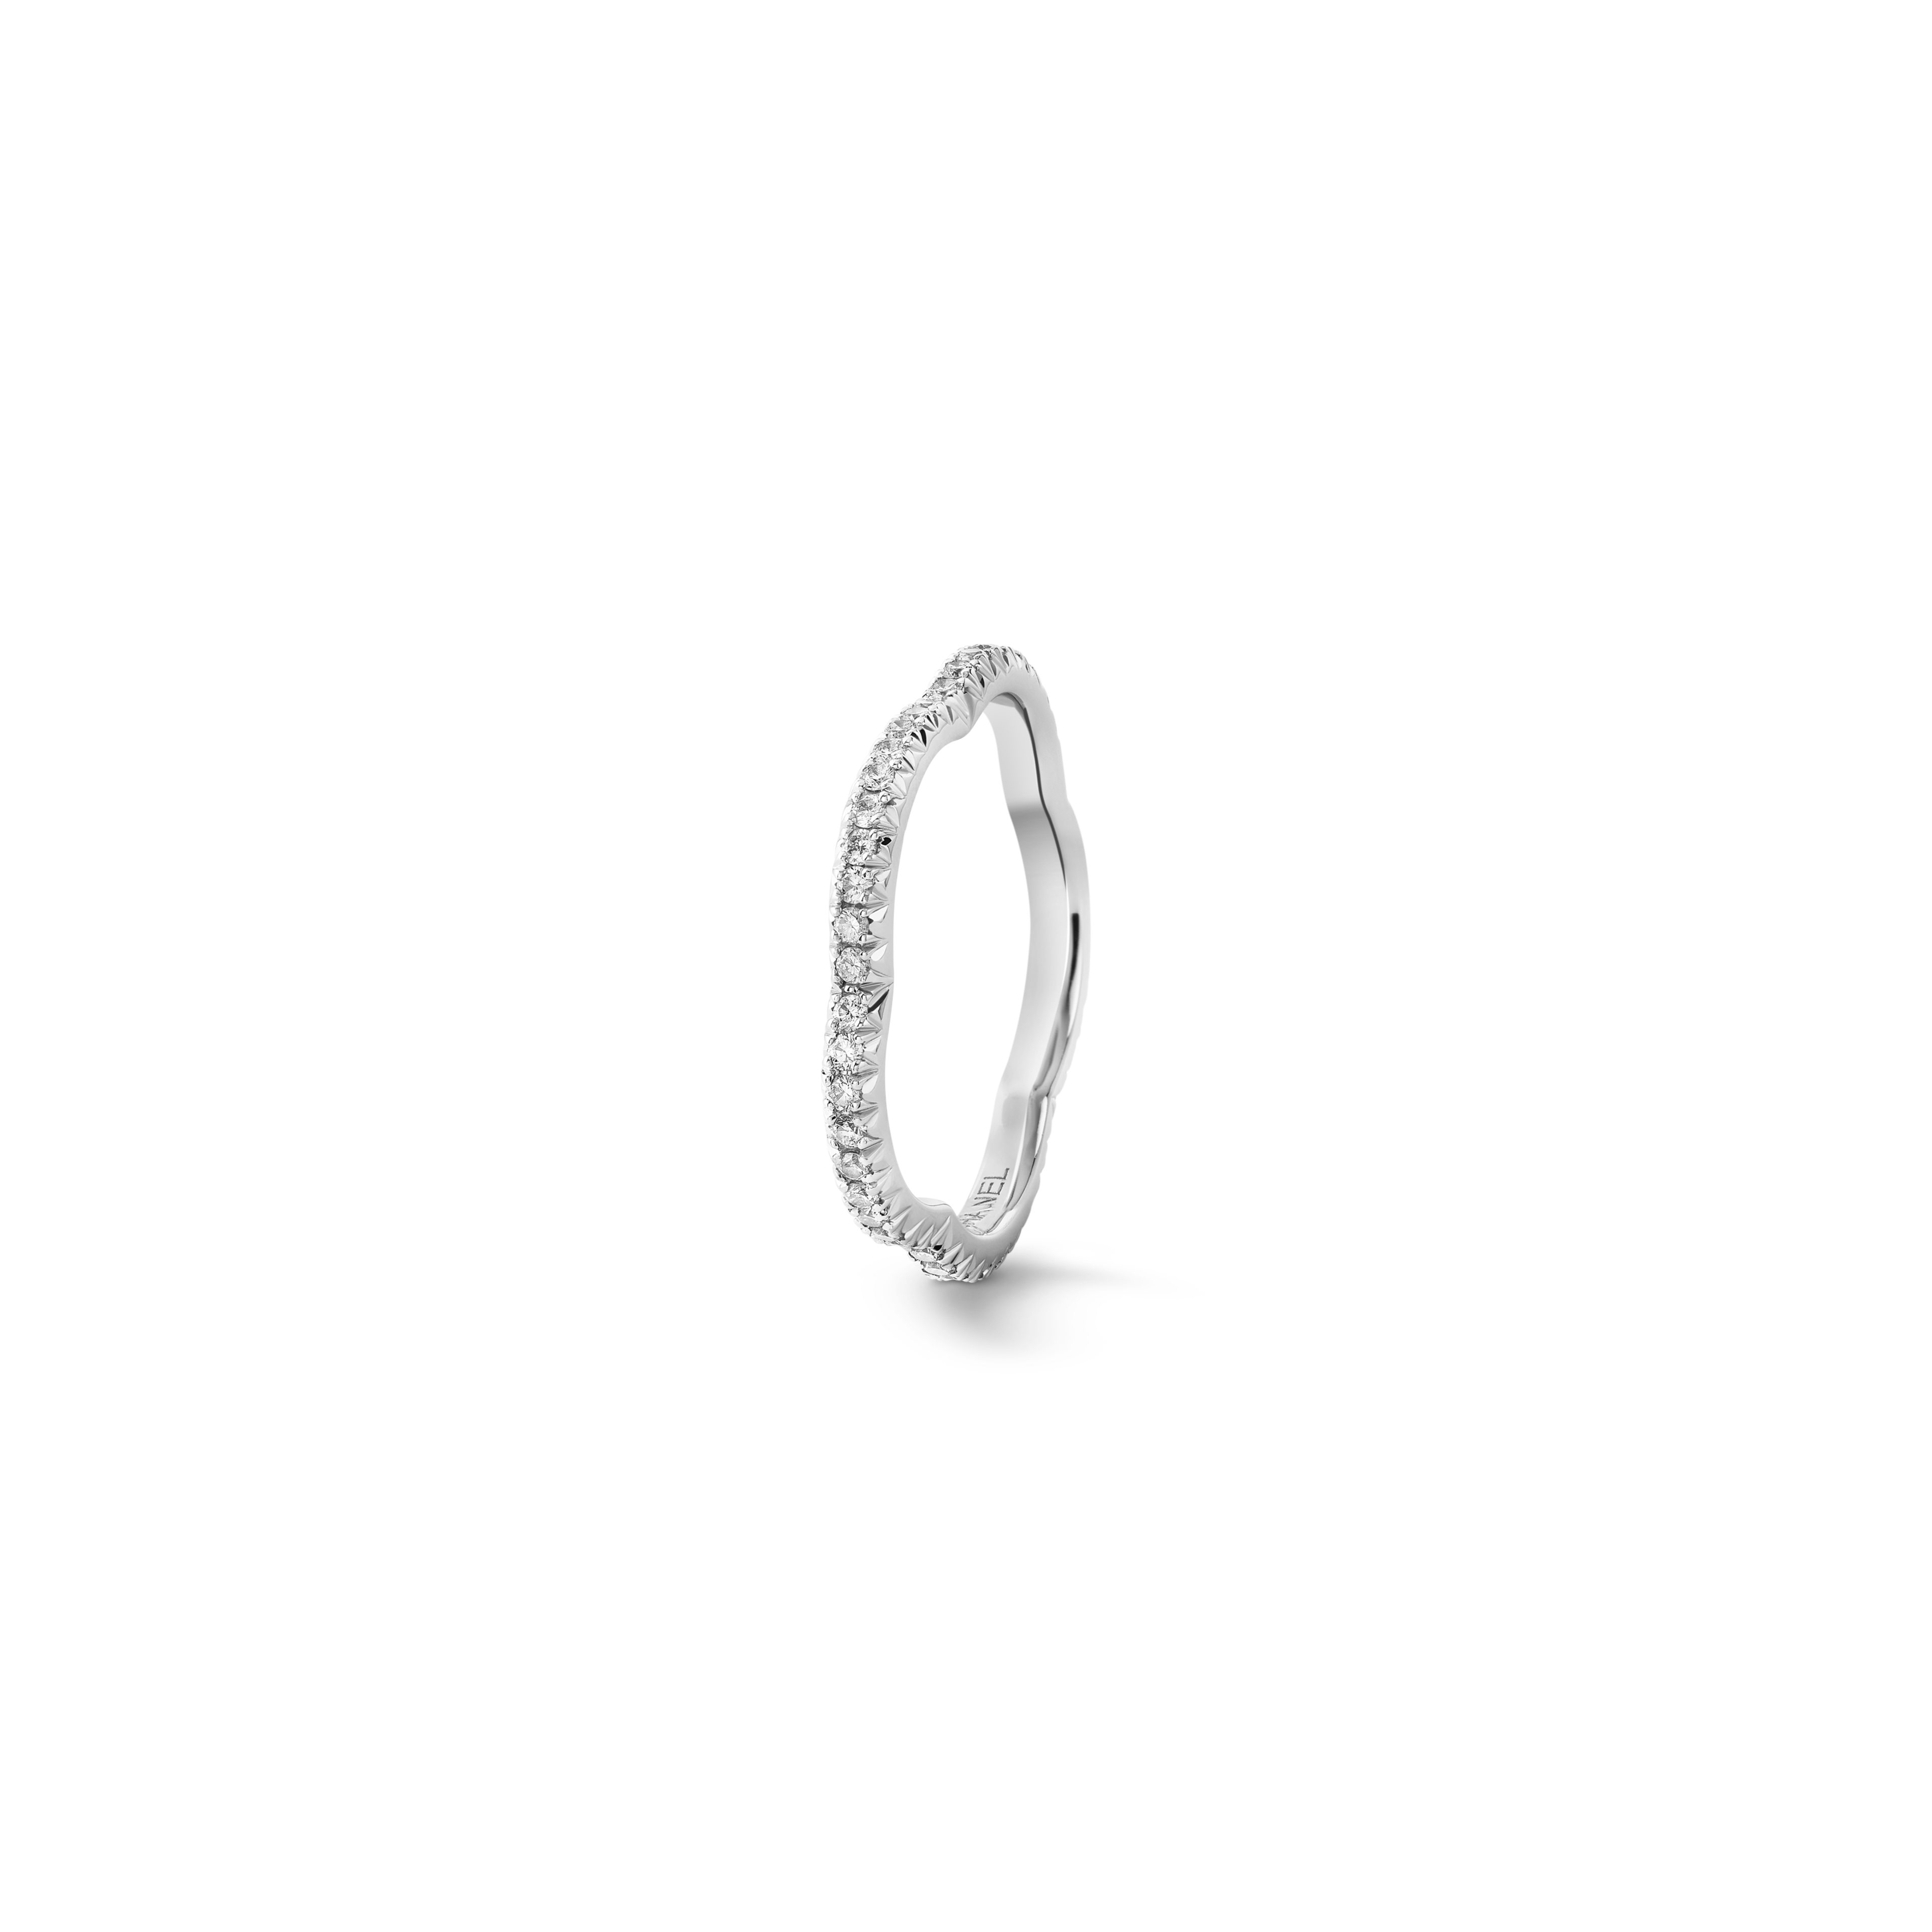 Wedding Bands – Fine Jewelry | Chanel With Regard To Latest Diamond Layered Anniversary Ring In White Gold (View 23 of 25)